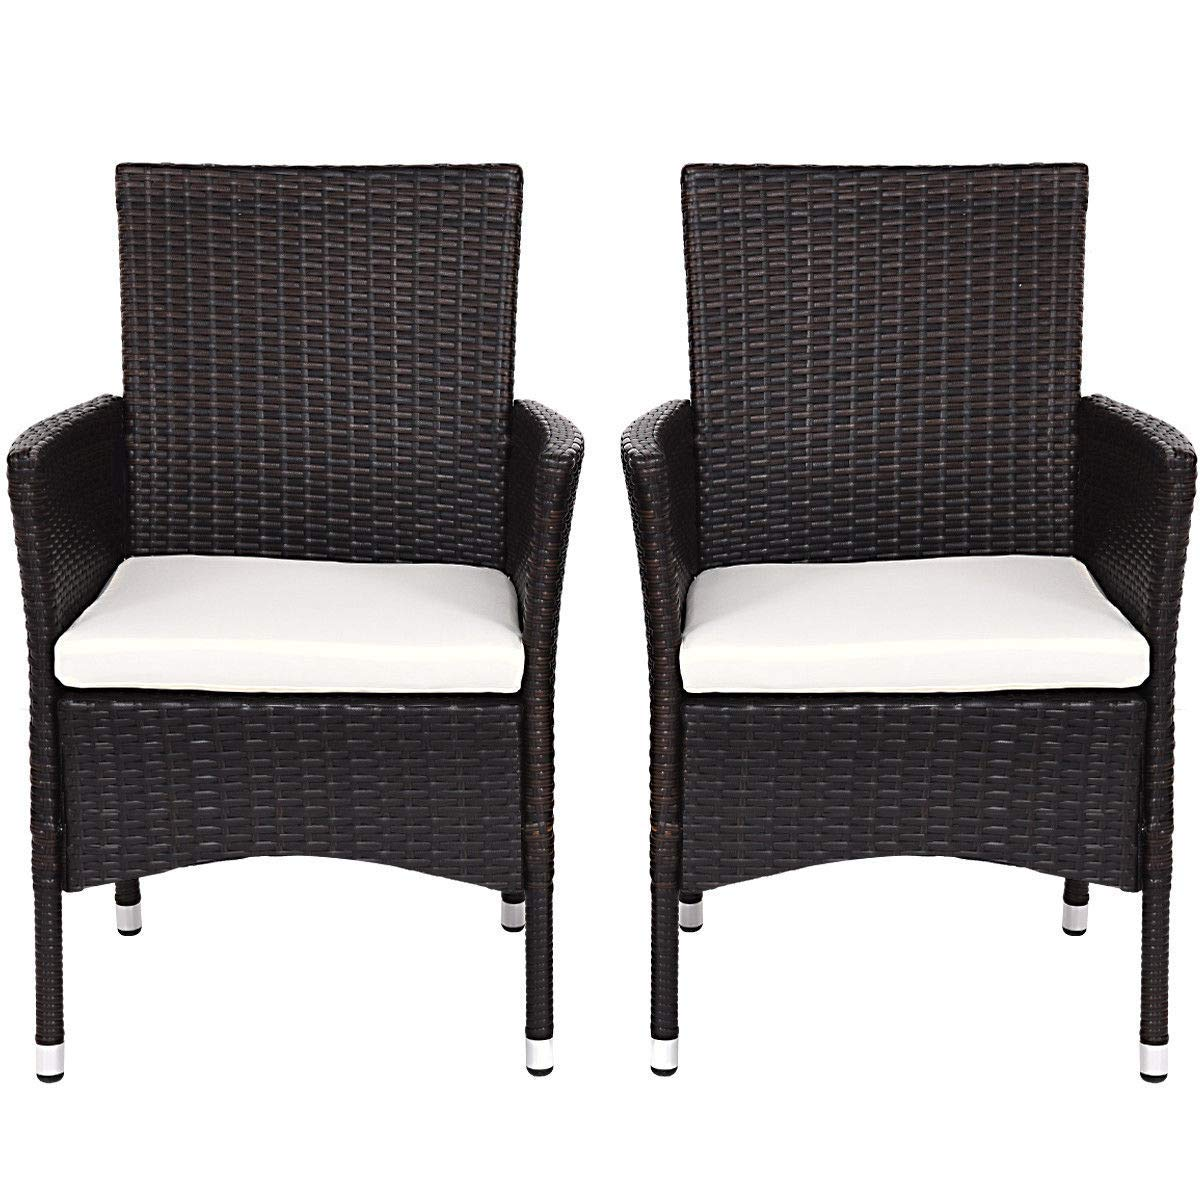 KCHEX>2PC Patio Rattan Wicker Dining Chairs Set Mixbrown with 2 Set Cushion Covers>This is Our Rattan Single Armchair Set which Will add a Touch of Modern Elegance to Your Home,Patio, balco